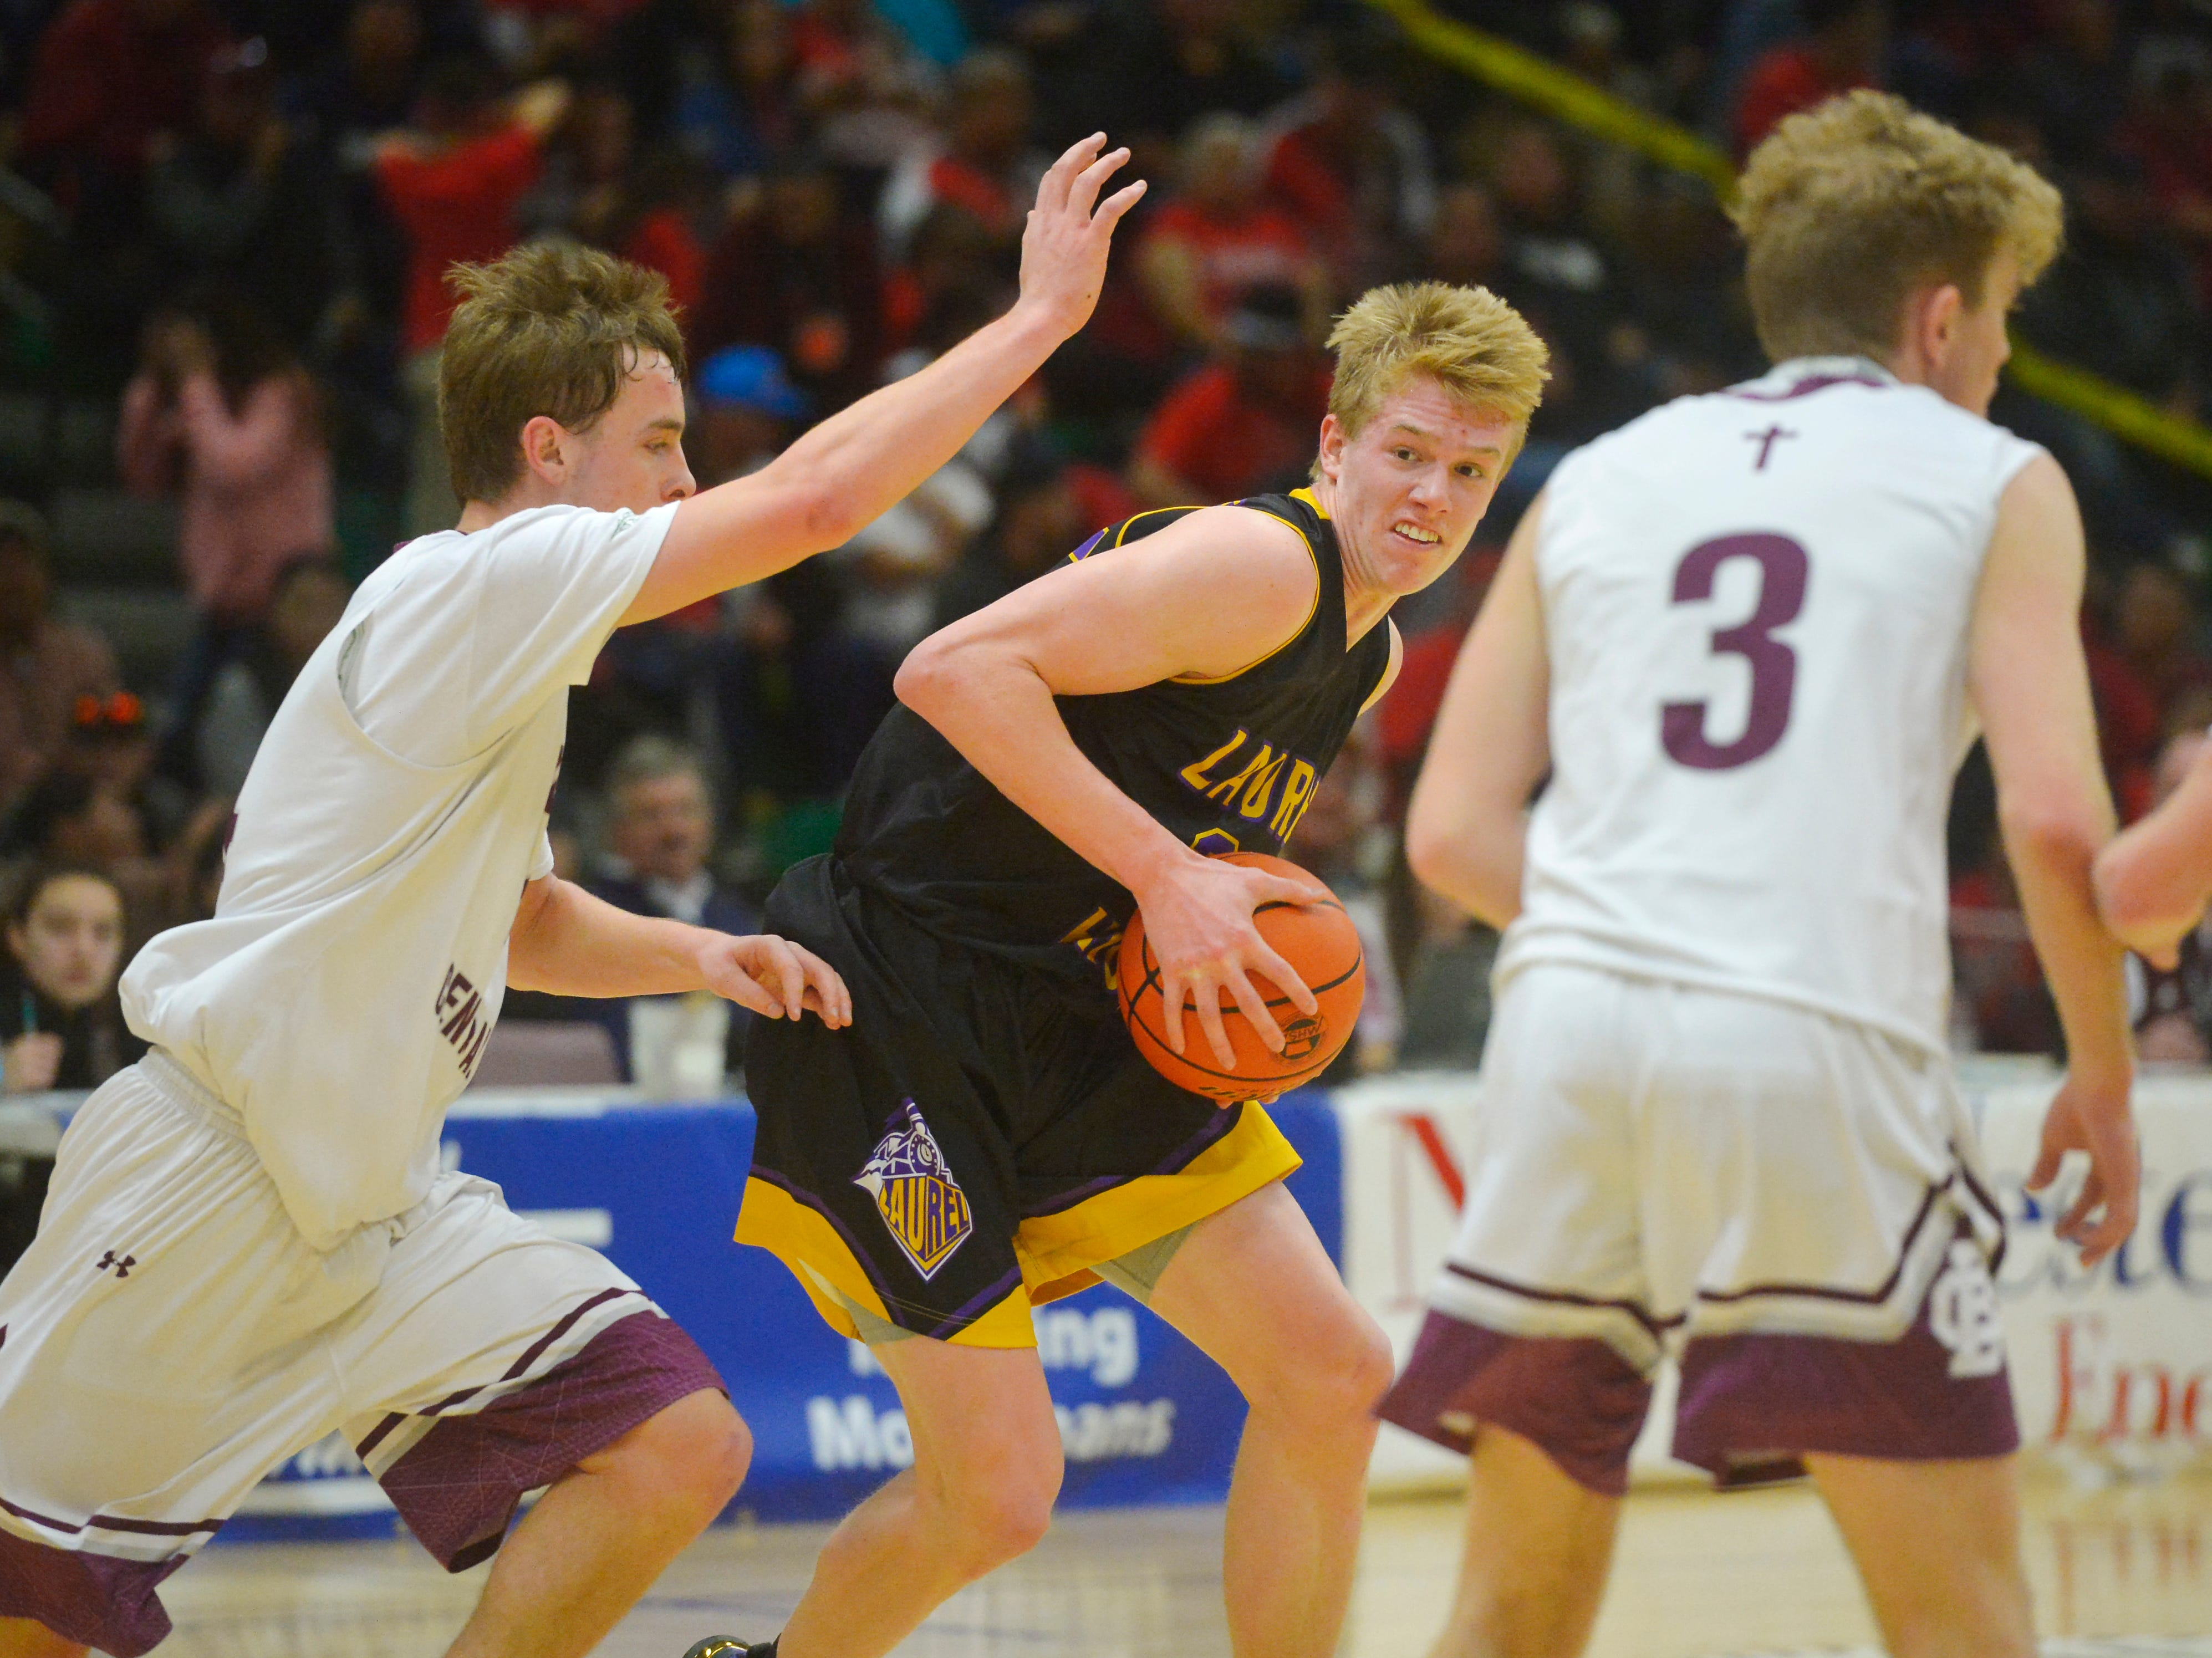 Laurel's Colter Bales works in the post during Thursdsay's game against Butte Central at the Class A State Basketball Tournament, Thursday, in the Four Seasons Arena.